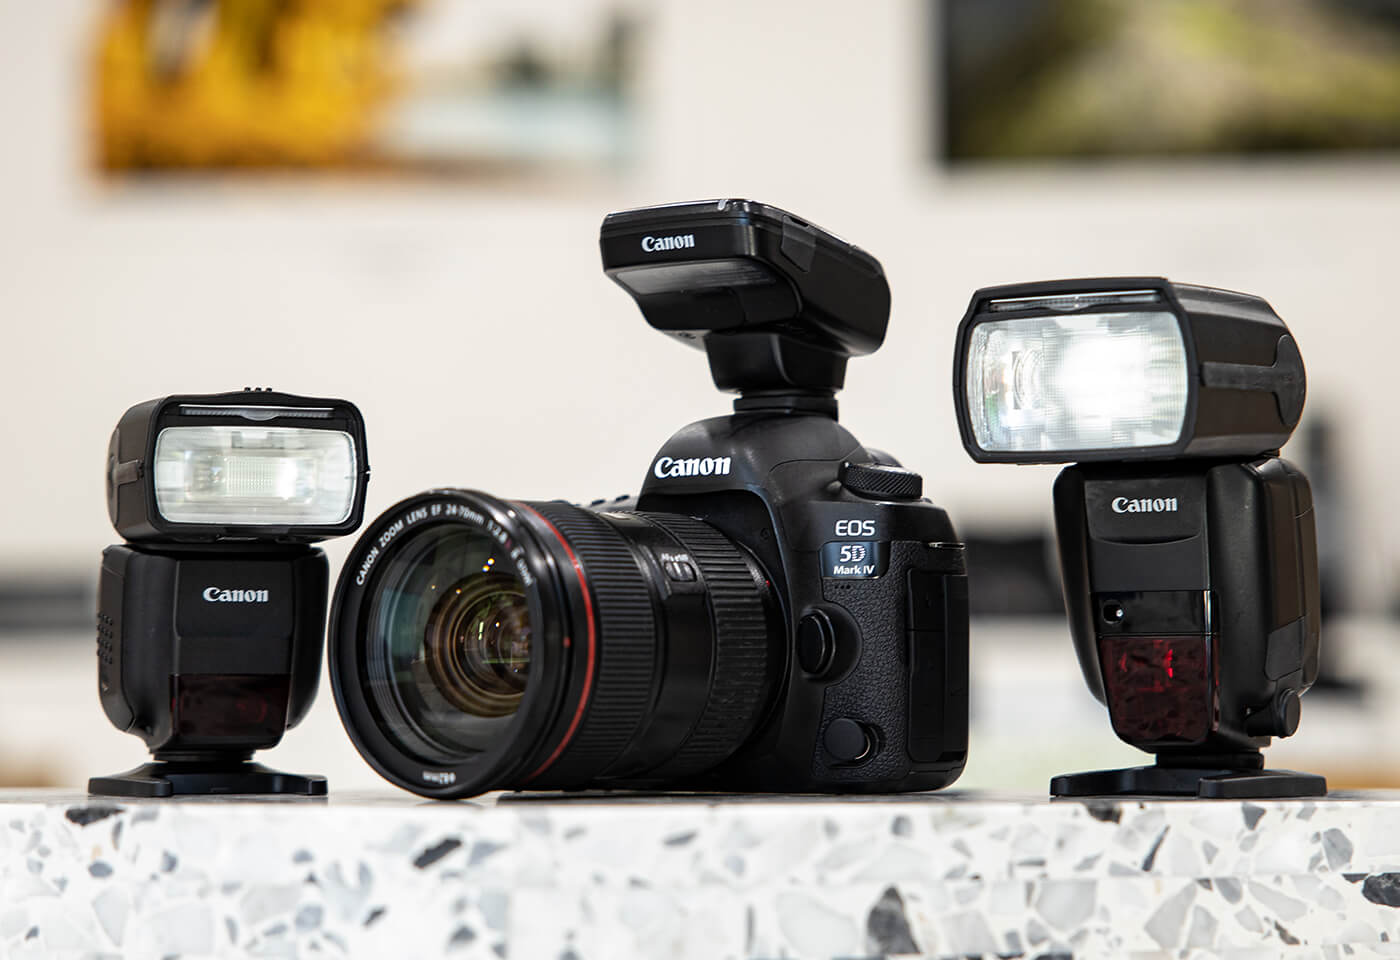 Image of Canon camera and speedlite flashed by Rob Caldwell